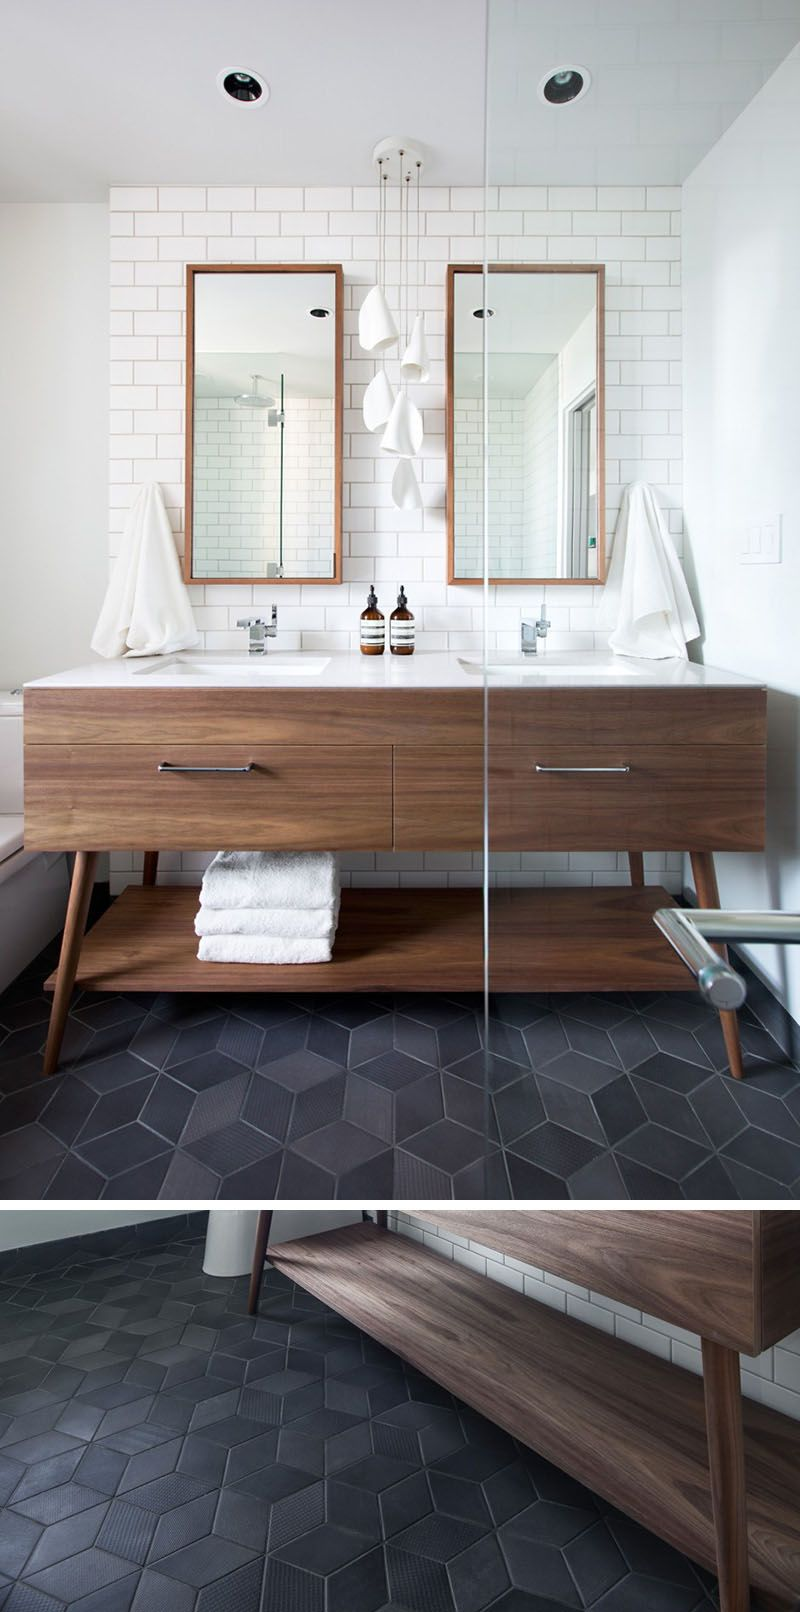 8 examples of tile flooring with geometric patterns dark 8 examples of tile flooring with geometric patterns dark textured diamond tiles make up dailygadgetfo Choice Image